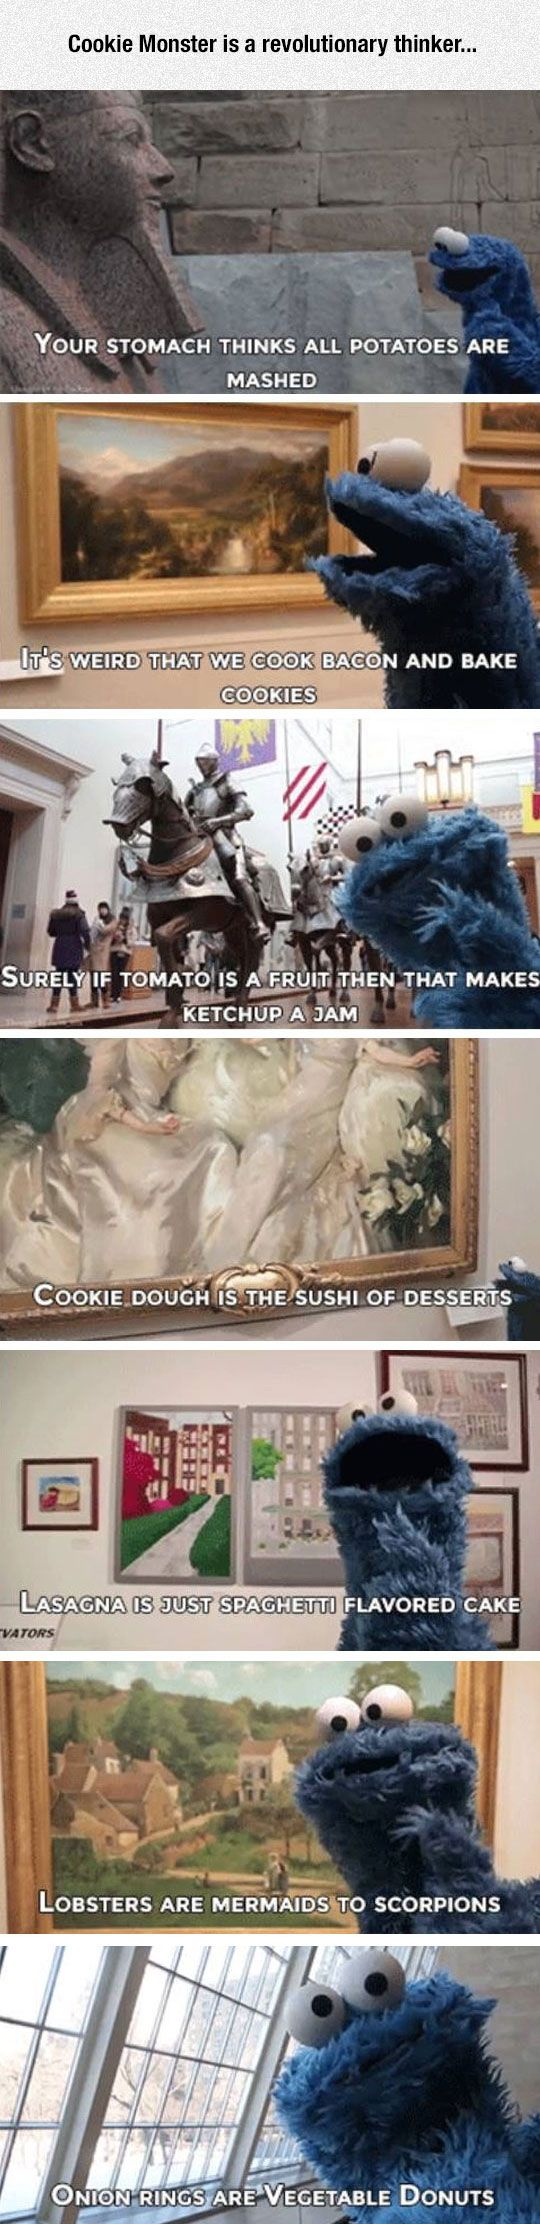 Cookie Monster is a revolutionary thinker...